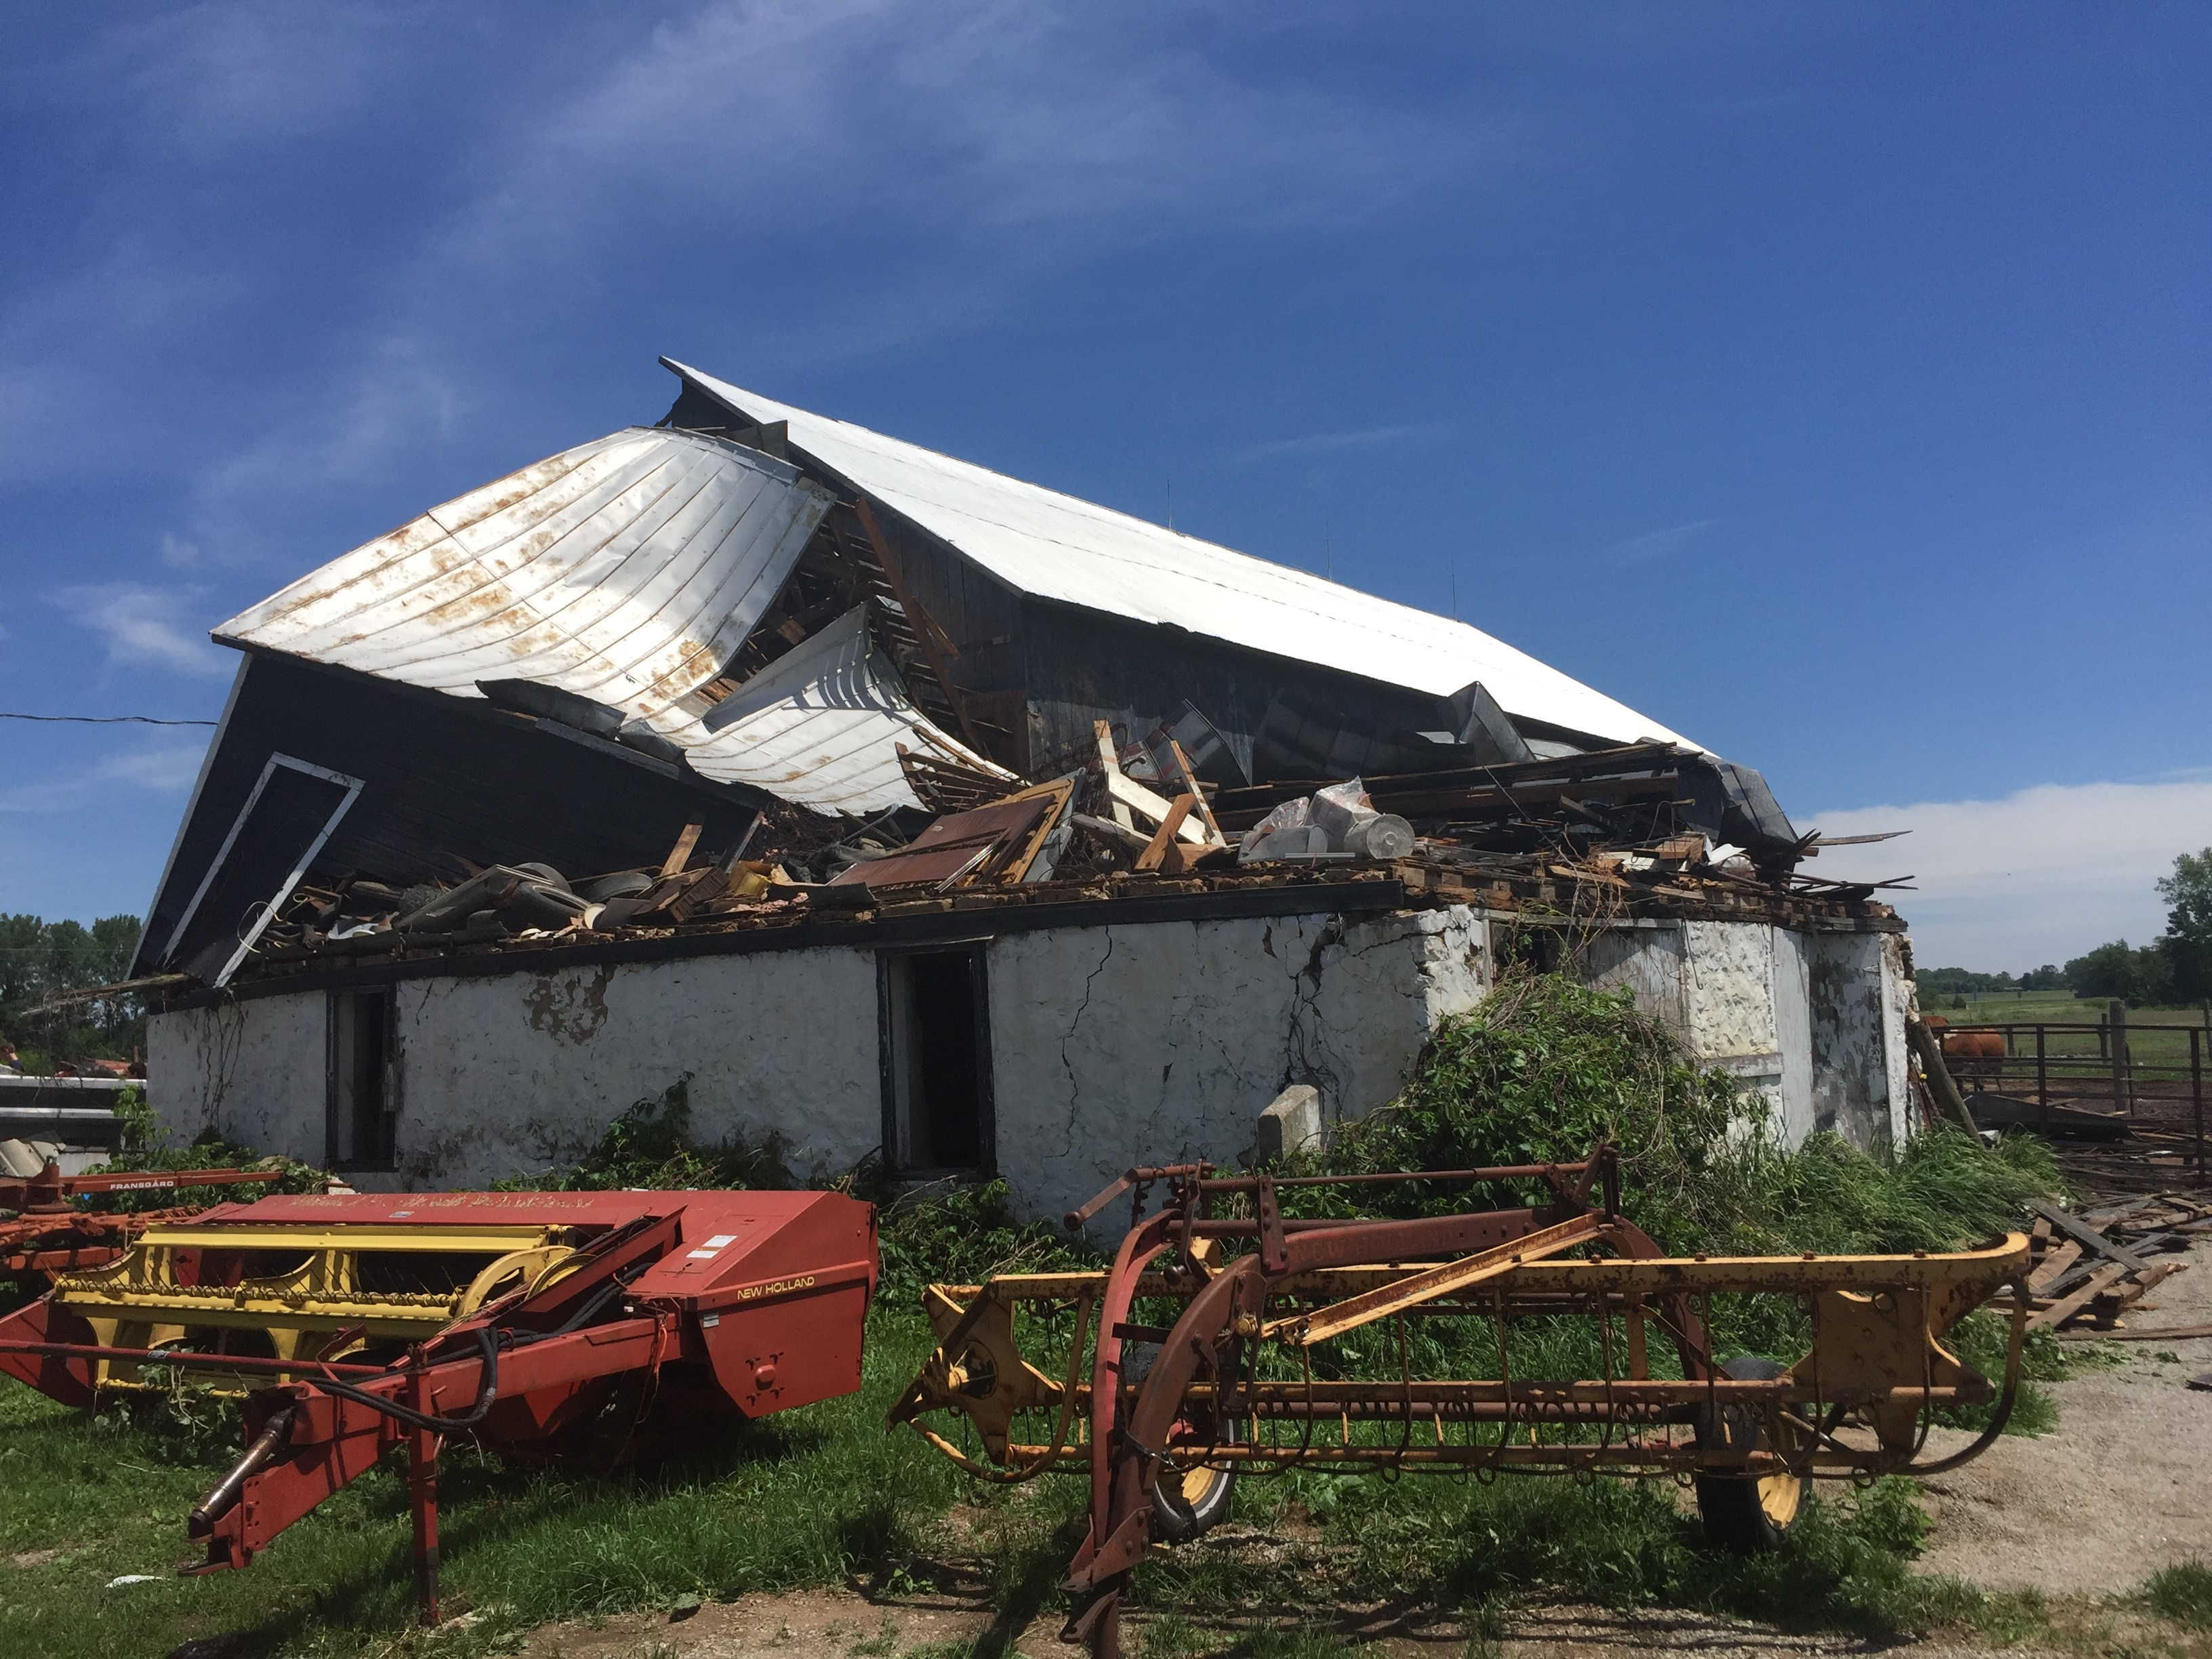 A barn in Navarino shows damage June 15, 2017, resulting from storms the previous night. (WLUK/Jake Swanson)